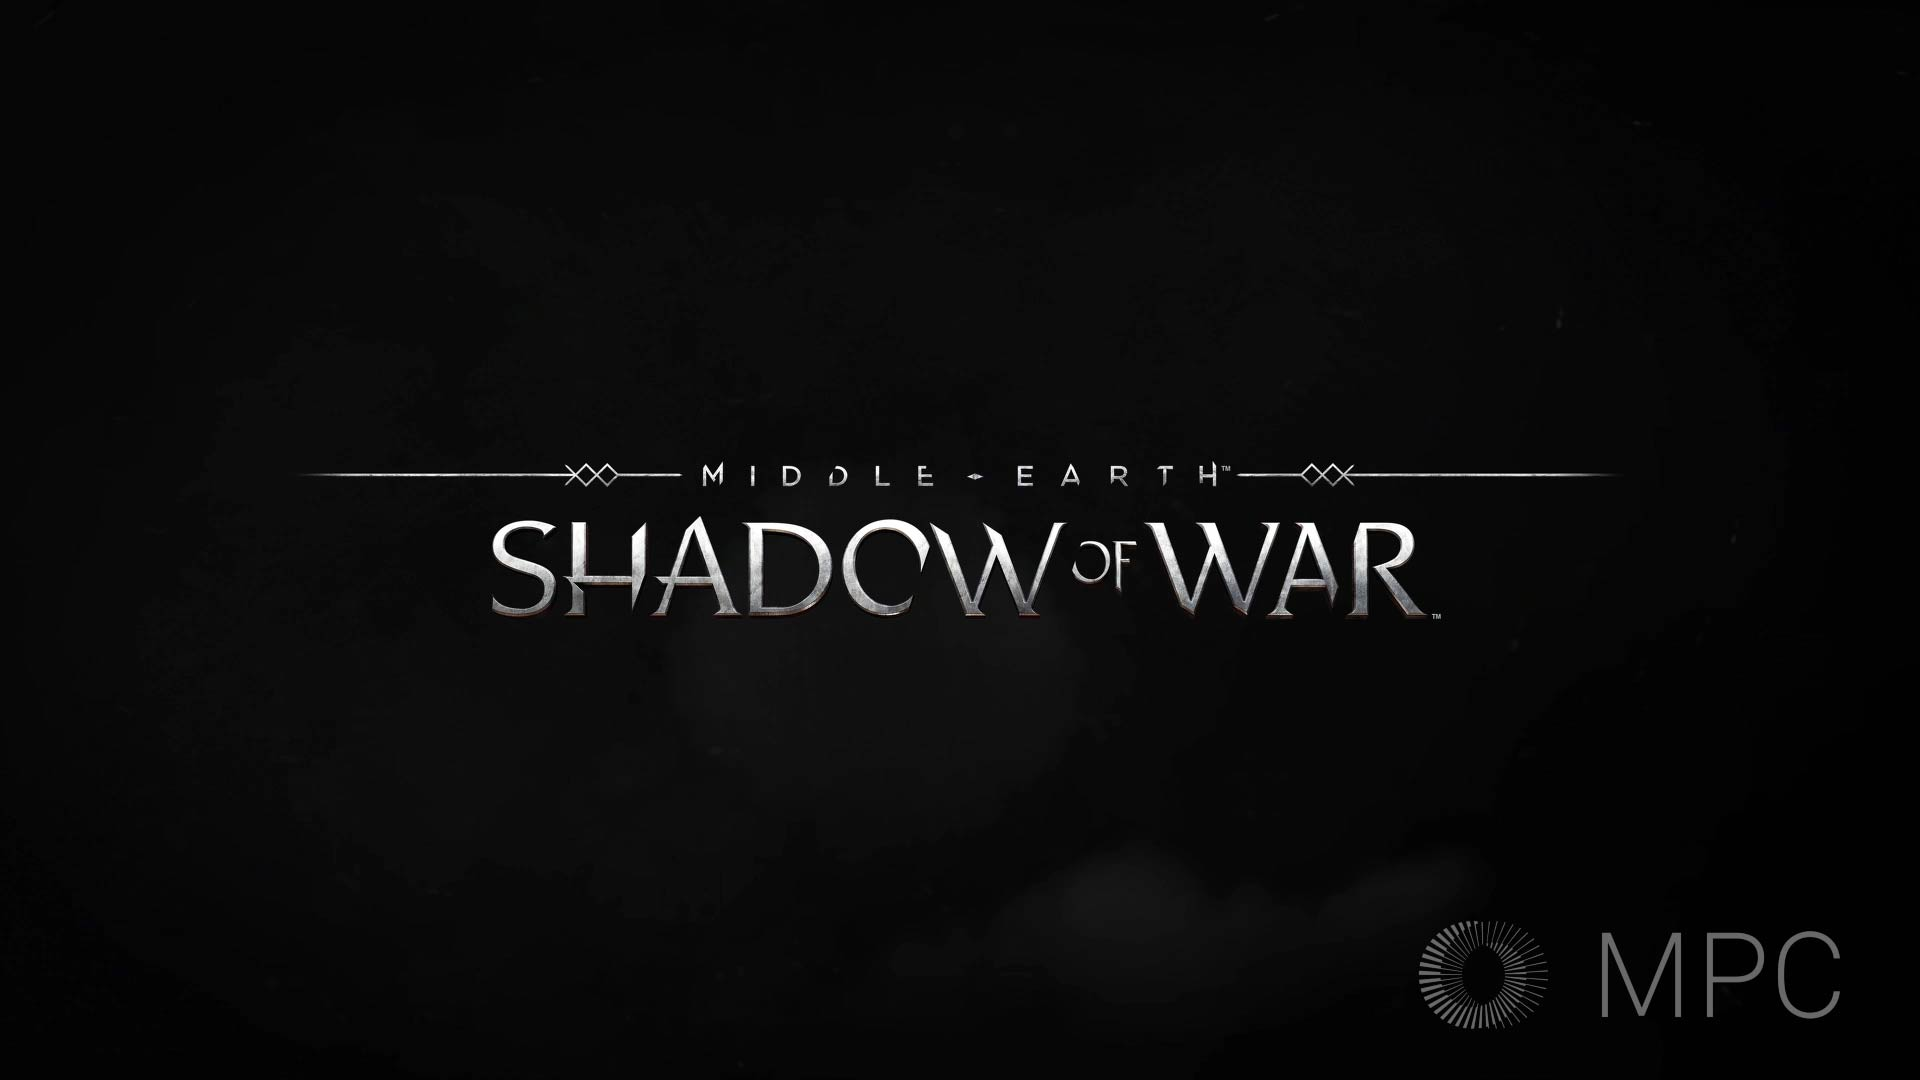 SHADOW OF WAR_TRAILER_01.jpg